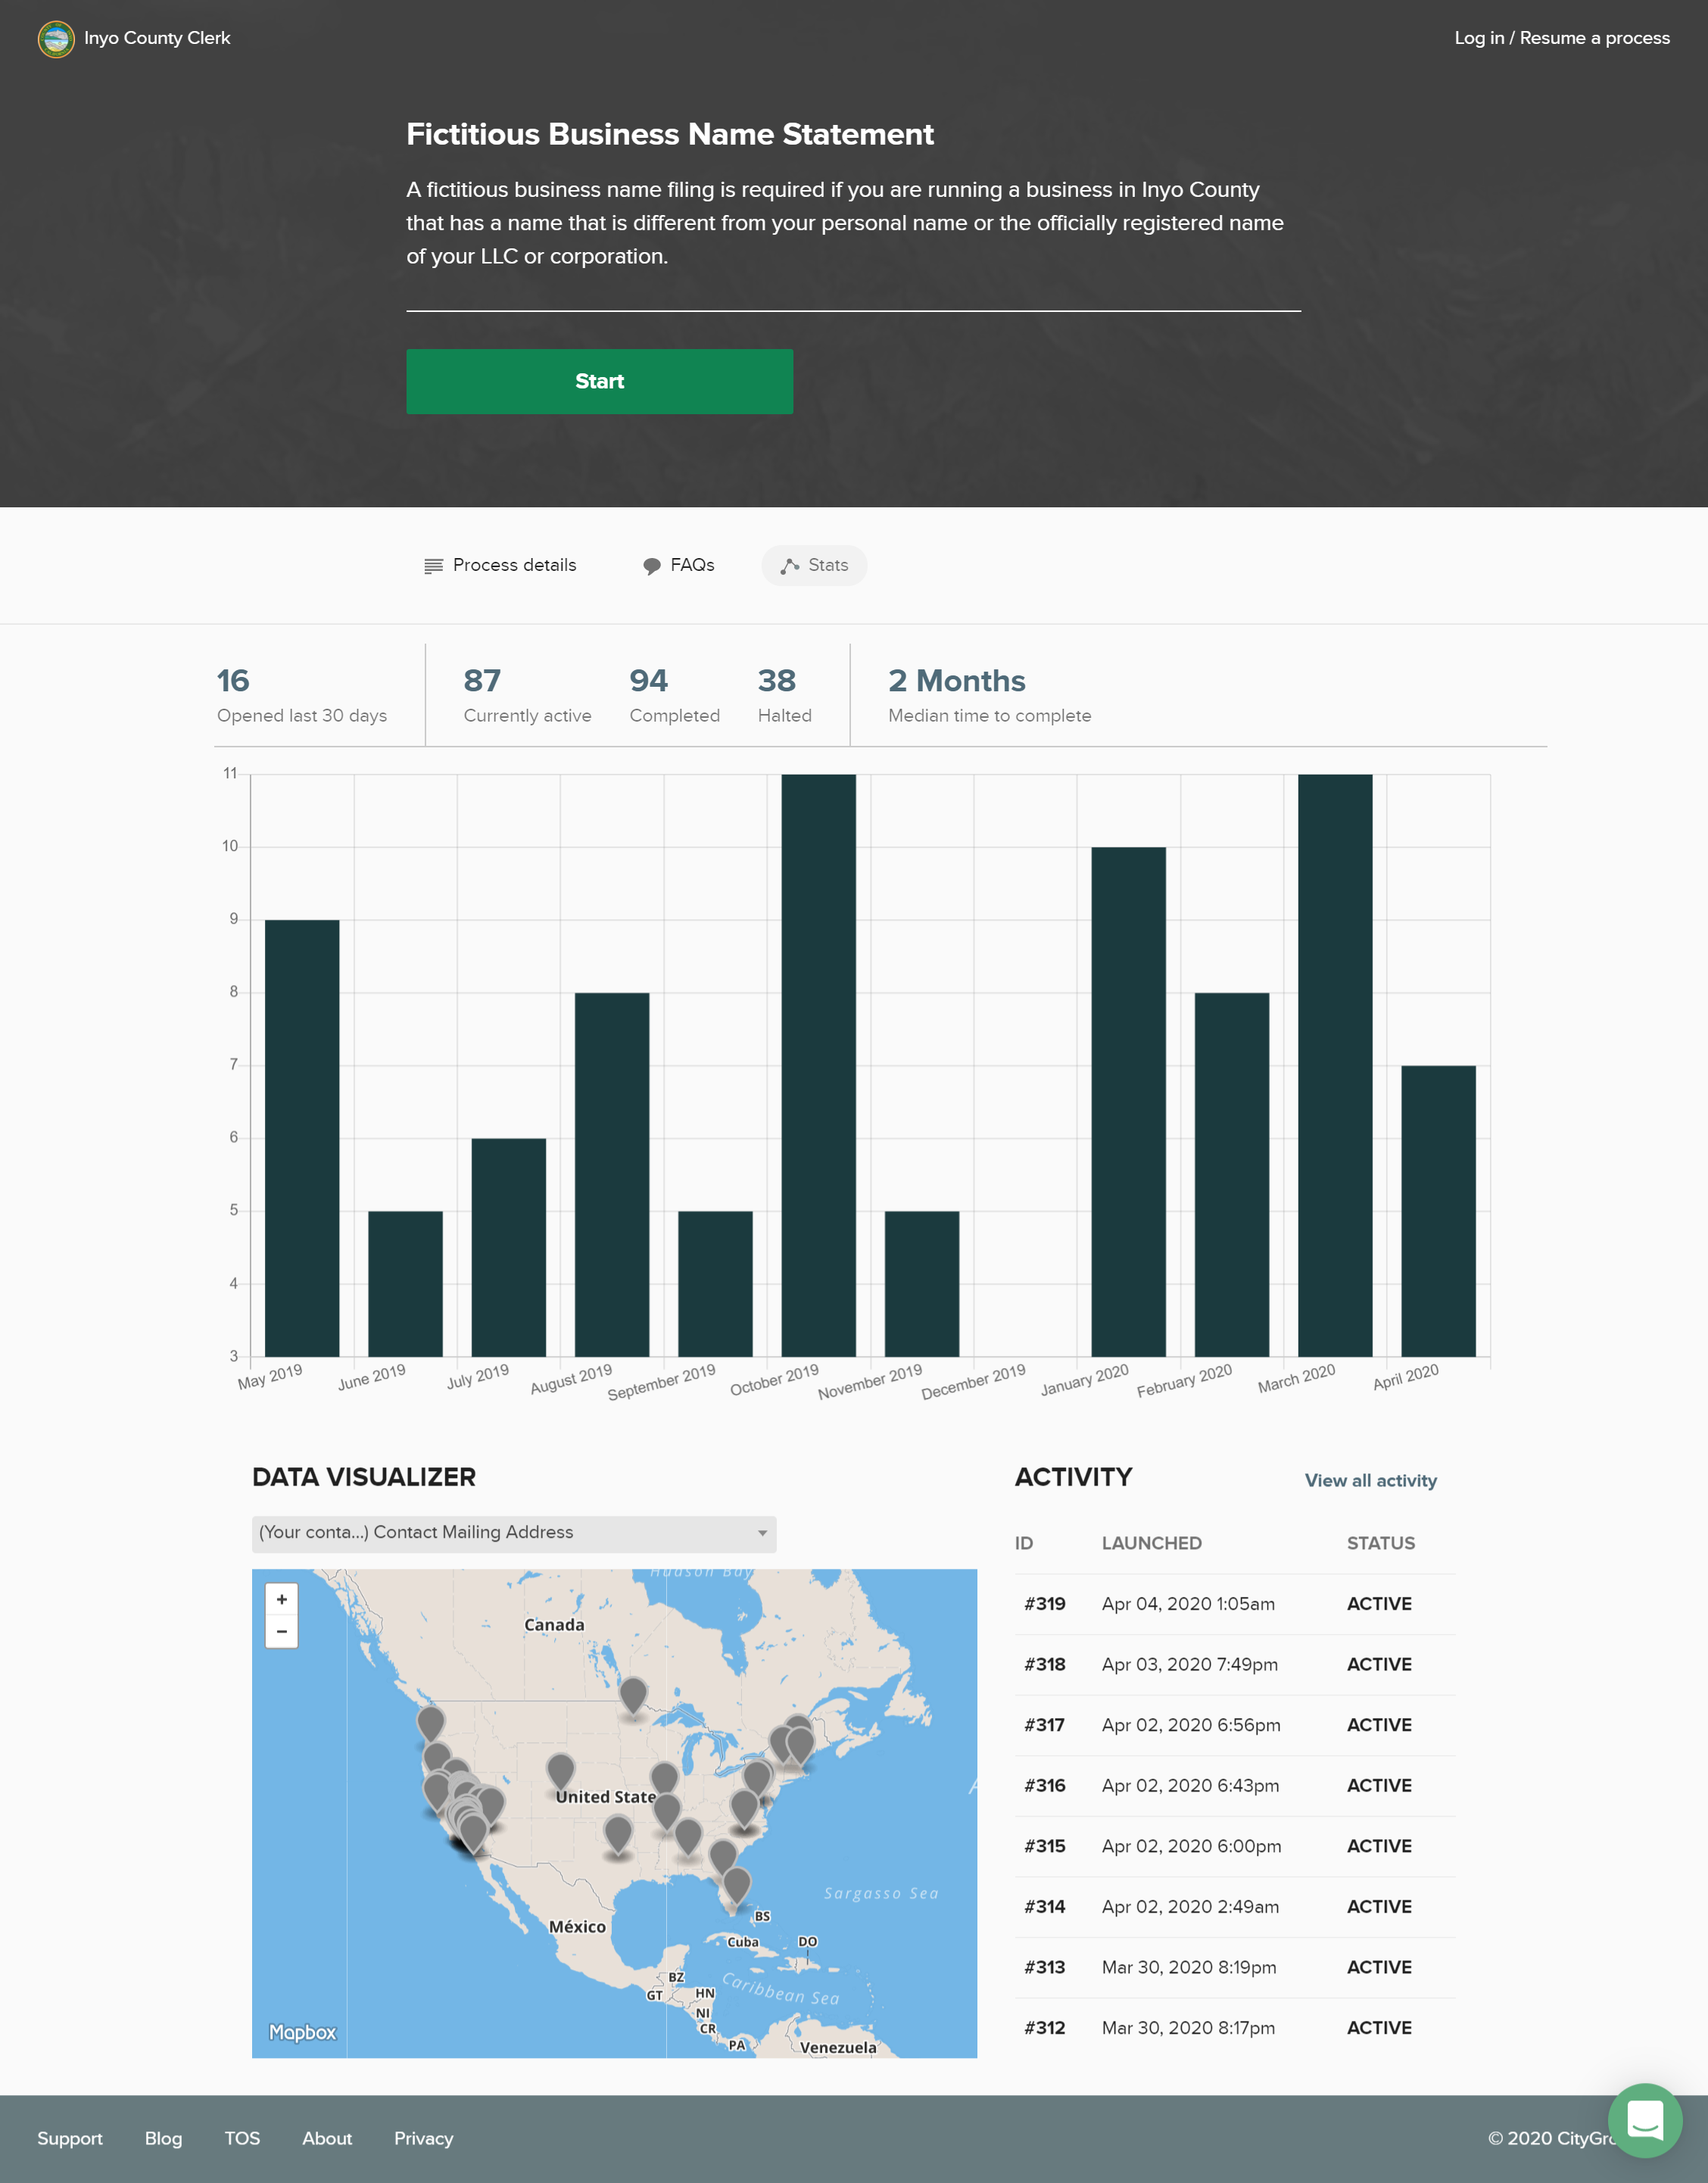 CityGrows fictitious business statement start page